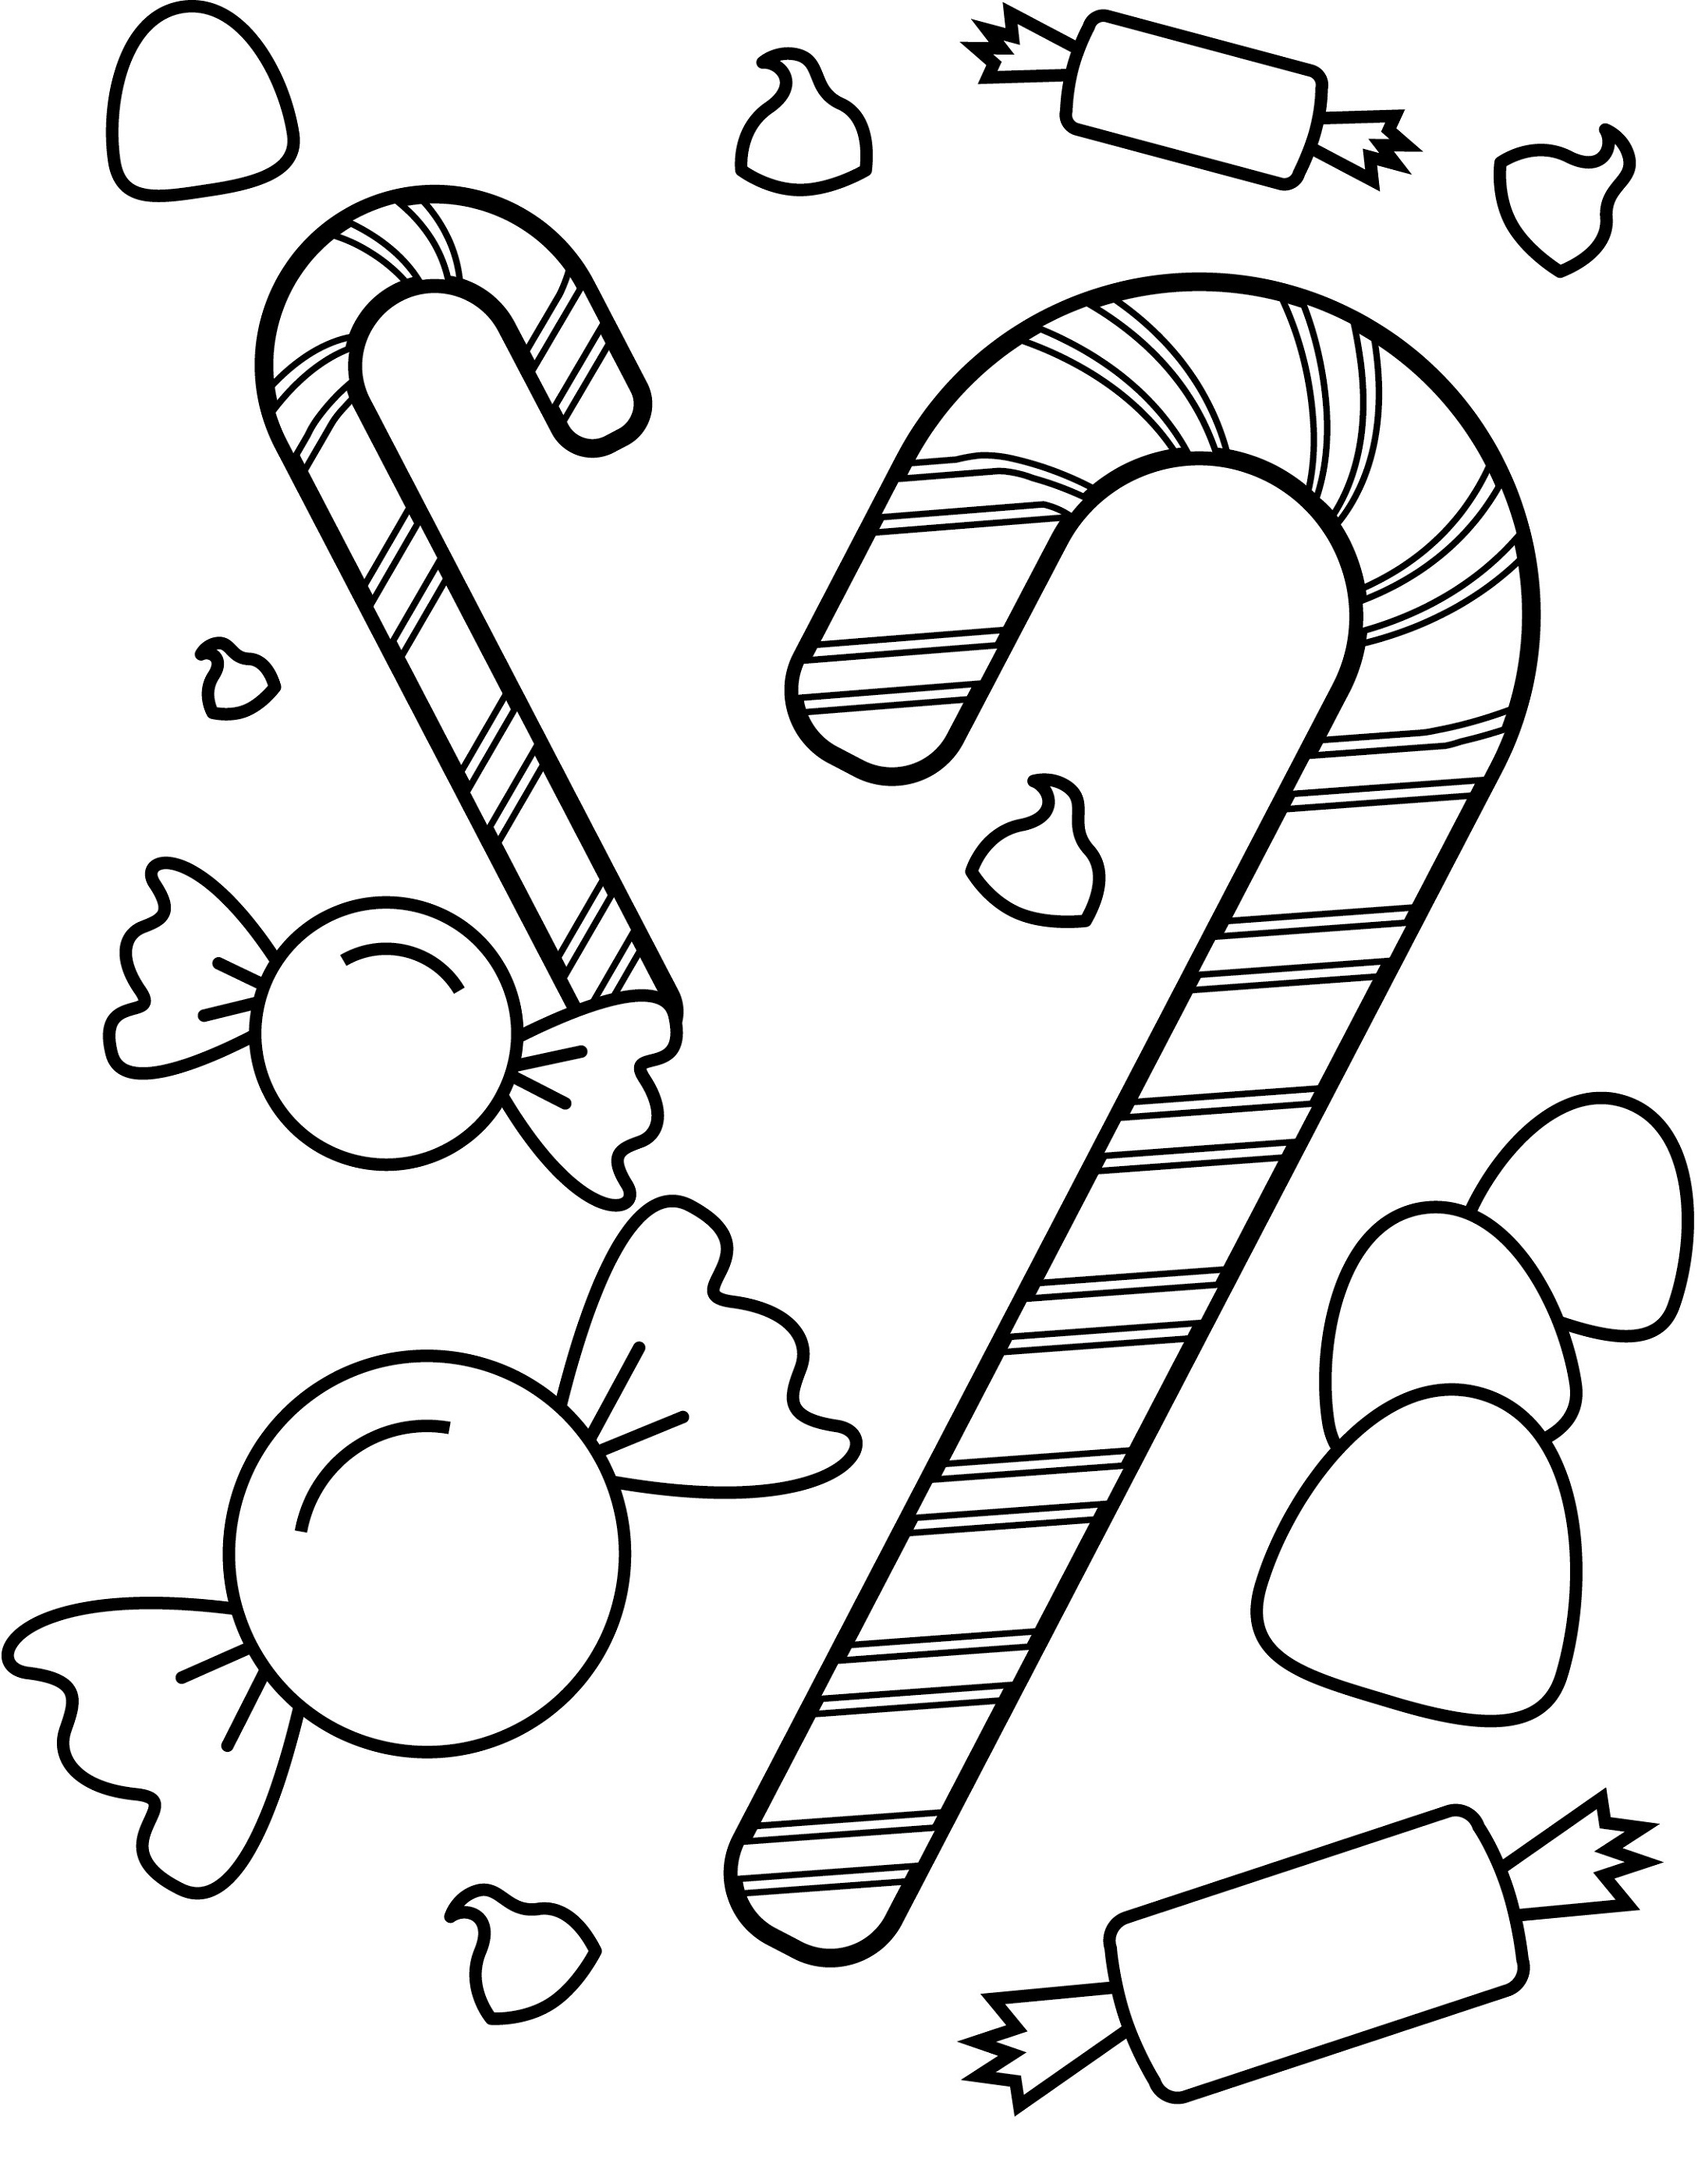 27 Candyland Coloring Pages Pictures | FREE COLORING PAGES ...